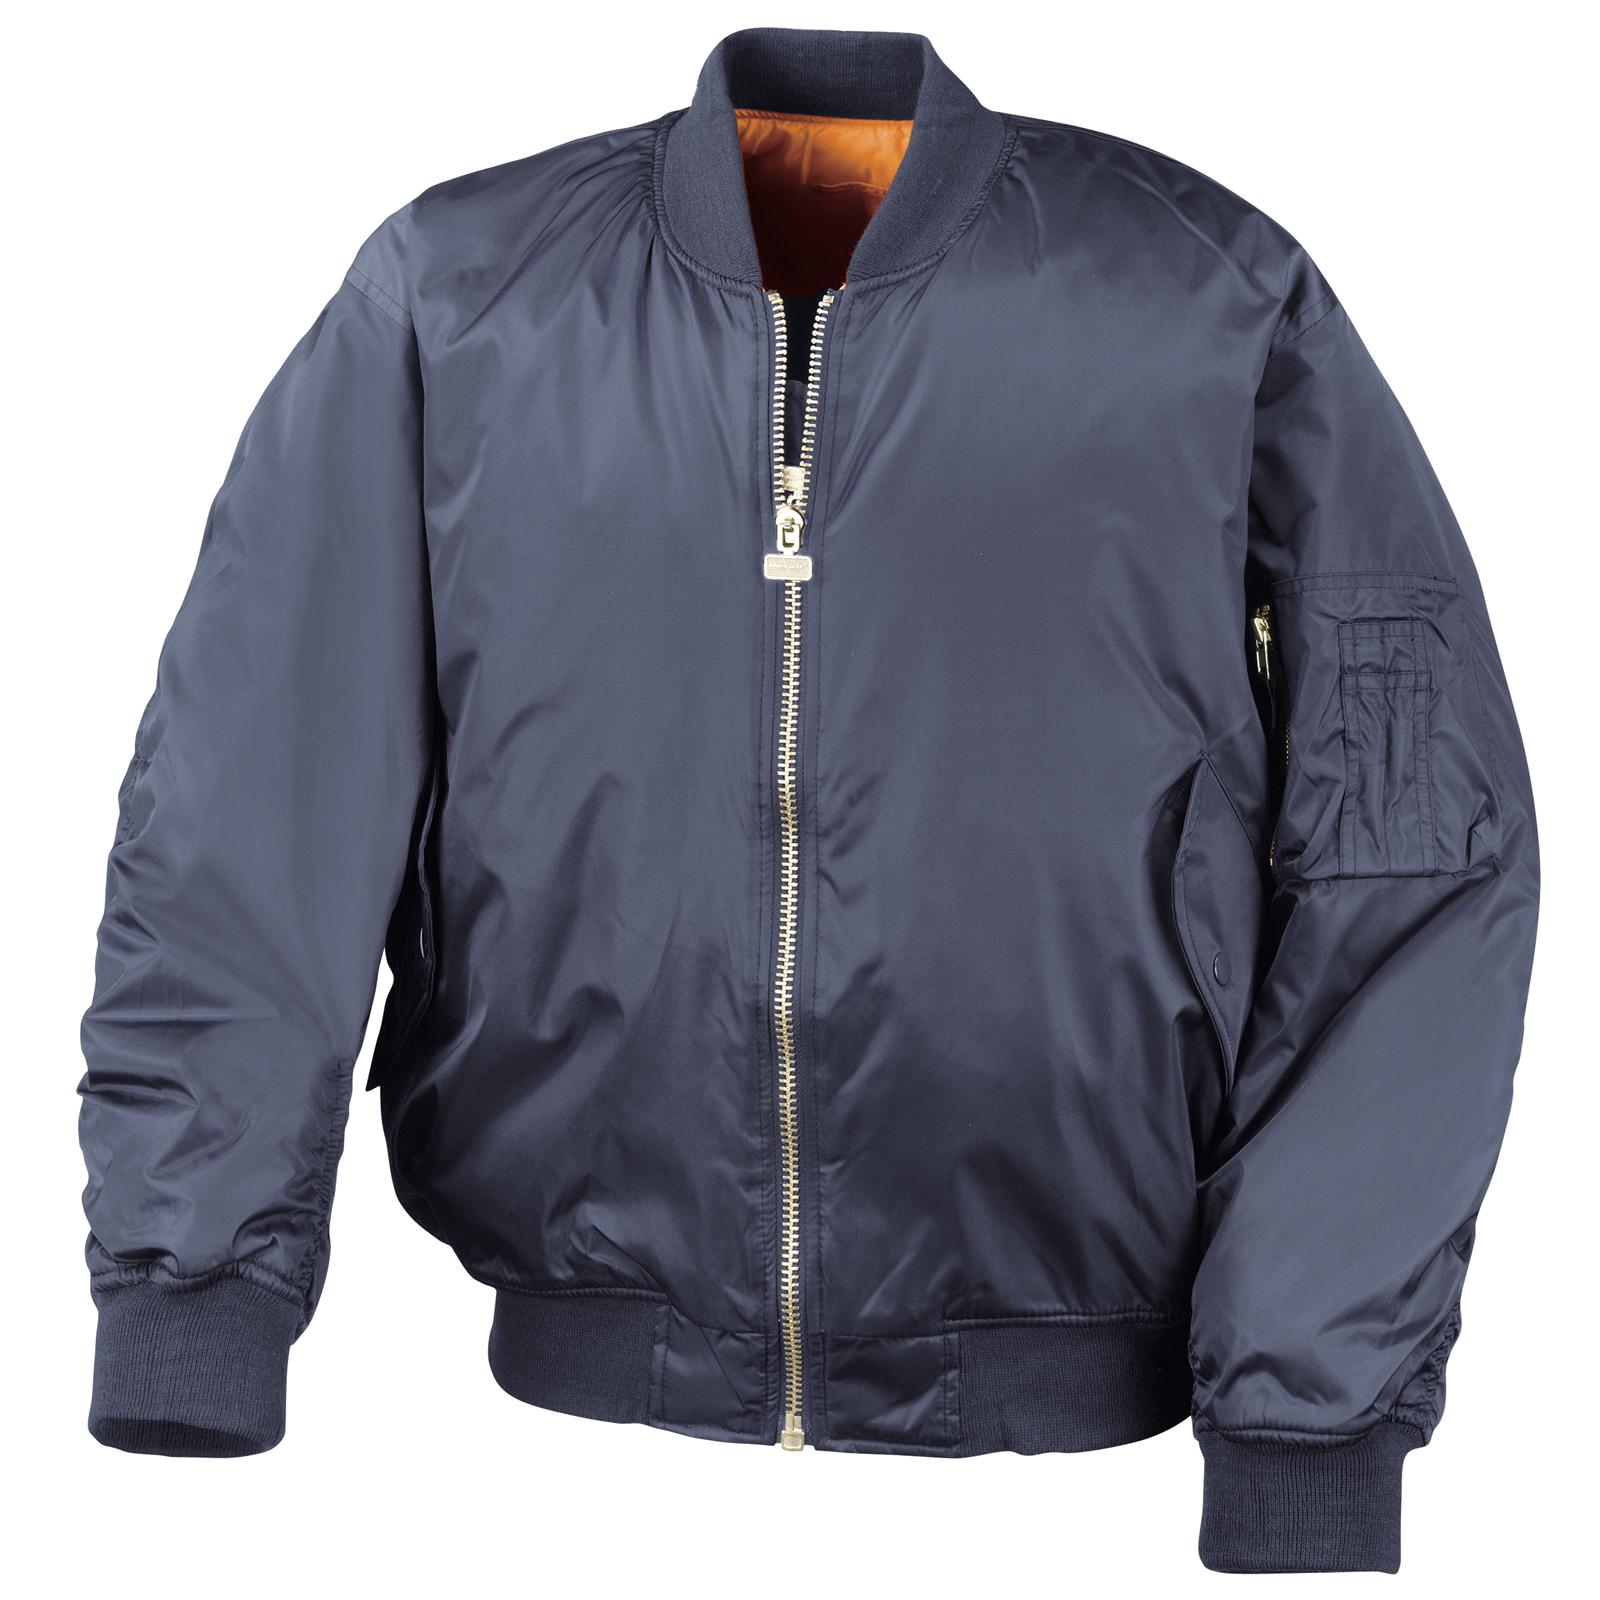 "The two most coveted symbols of naval aviators are their gold wings & their G-1 flight jacket, and our US Navy Bomber Jacket G-1 with""Wings of Gold"" lining is truly a jacket any naval aviator or naval aviation enthusiast would be proud to wear!"